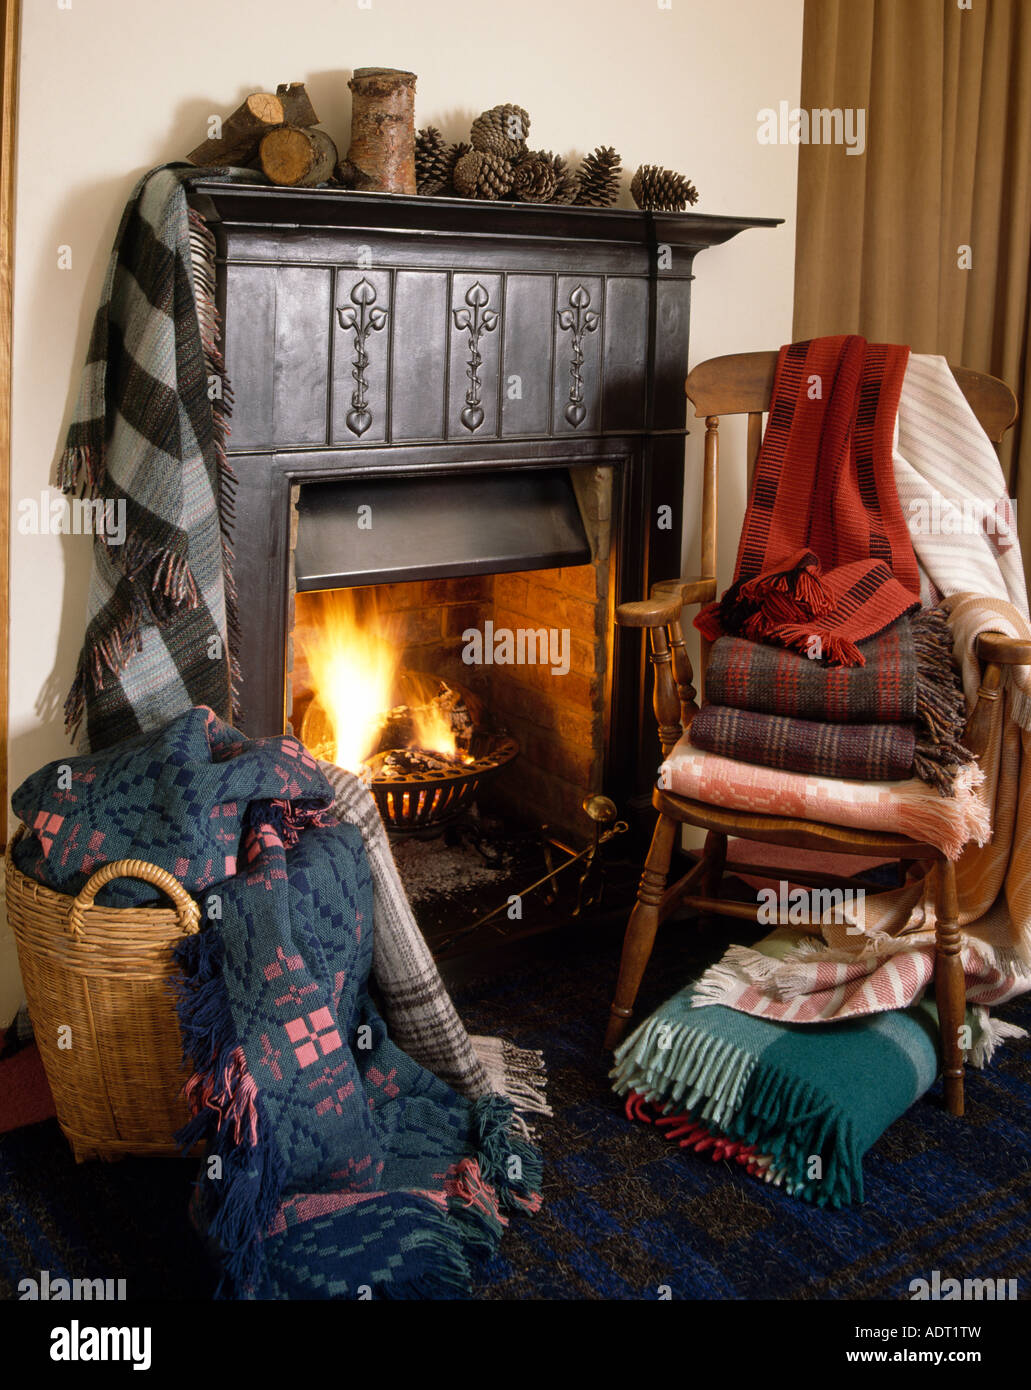 Welsh Blankets In Large Basket Beside Fireplace And Pile Of Blankets